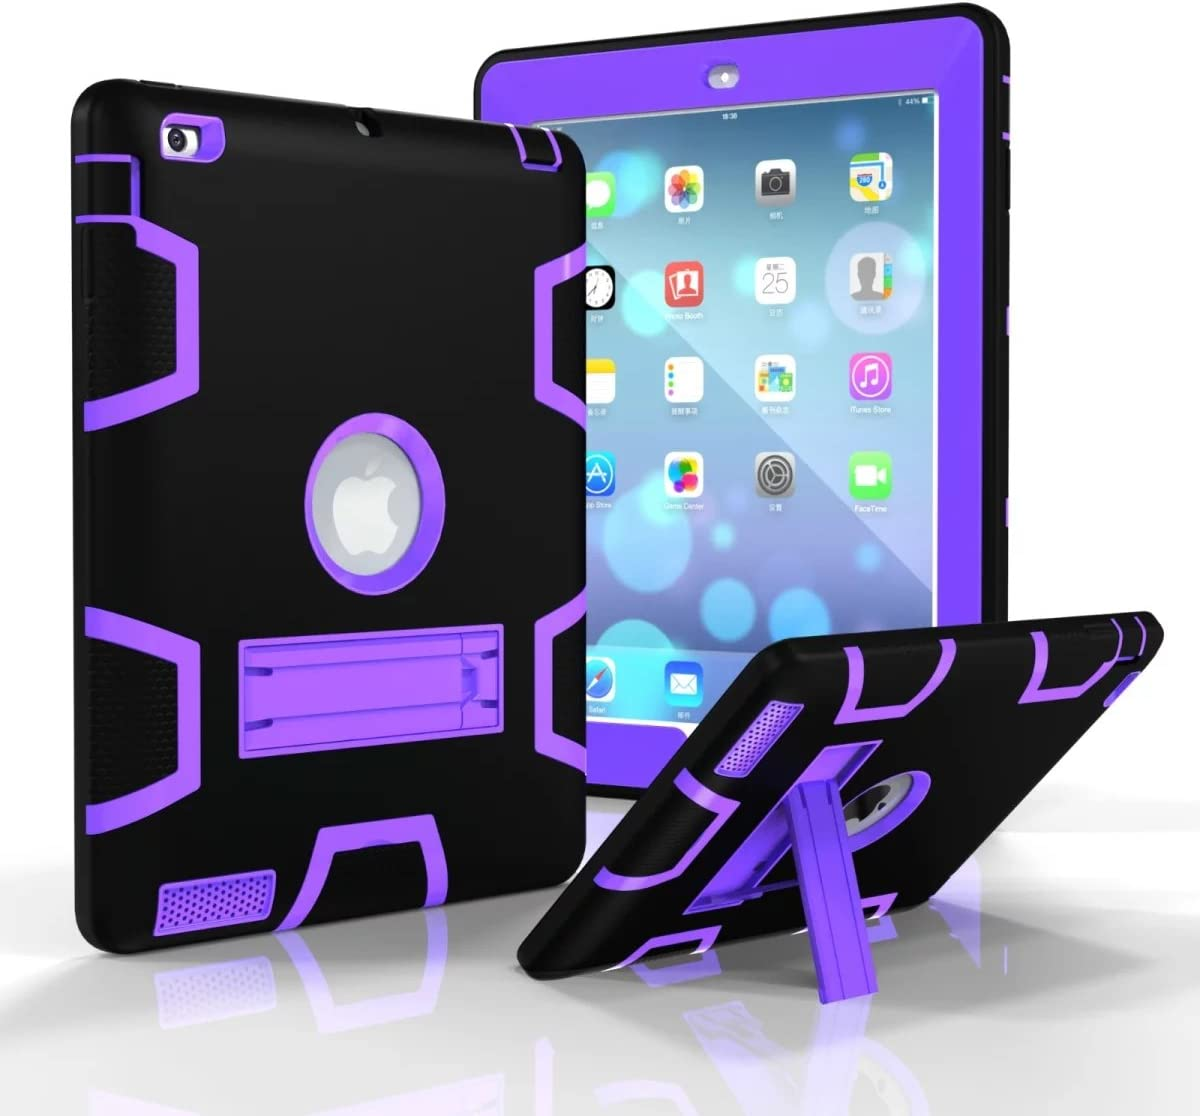 Jaorty iPad 2/3/4 Case,iPad 2/3/4 Retina Case, 3 in 1 Hybrid [Soft&Hard] Heavy Duty Rugged Stand Cover Shockproof Anti-Slip Anti-Scratch Full-Body Protective Cases for iPad 2/3/4, Black/Purple